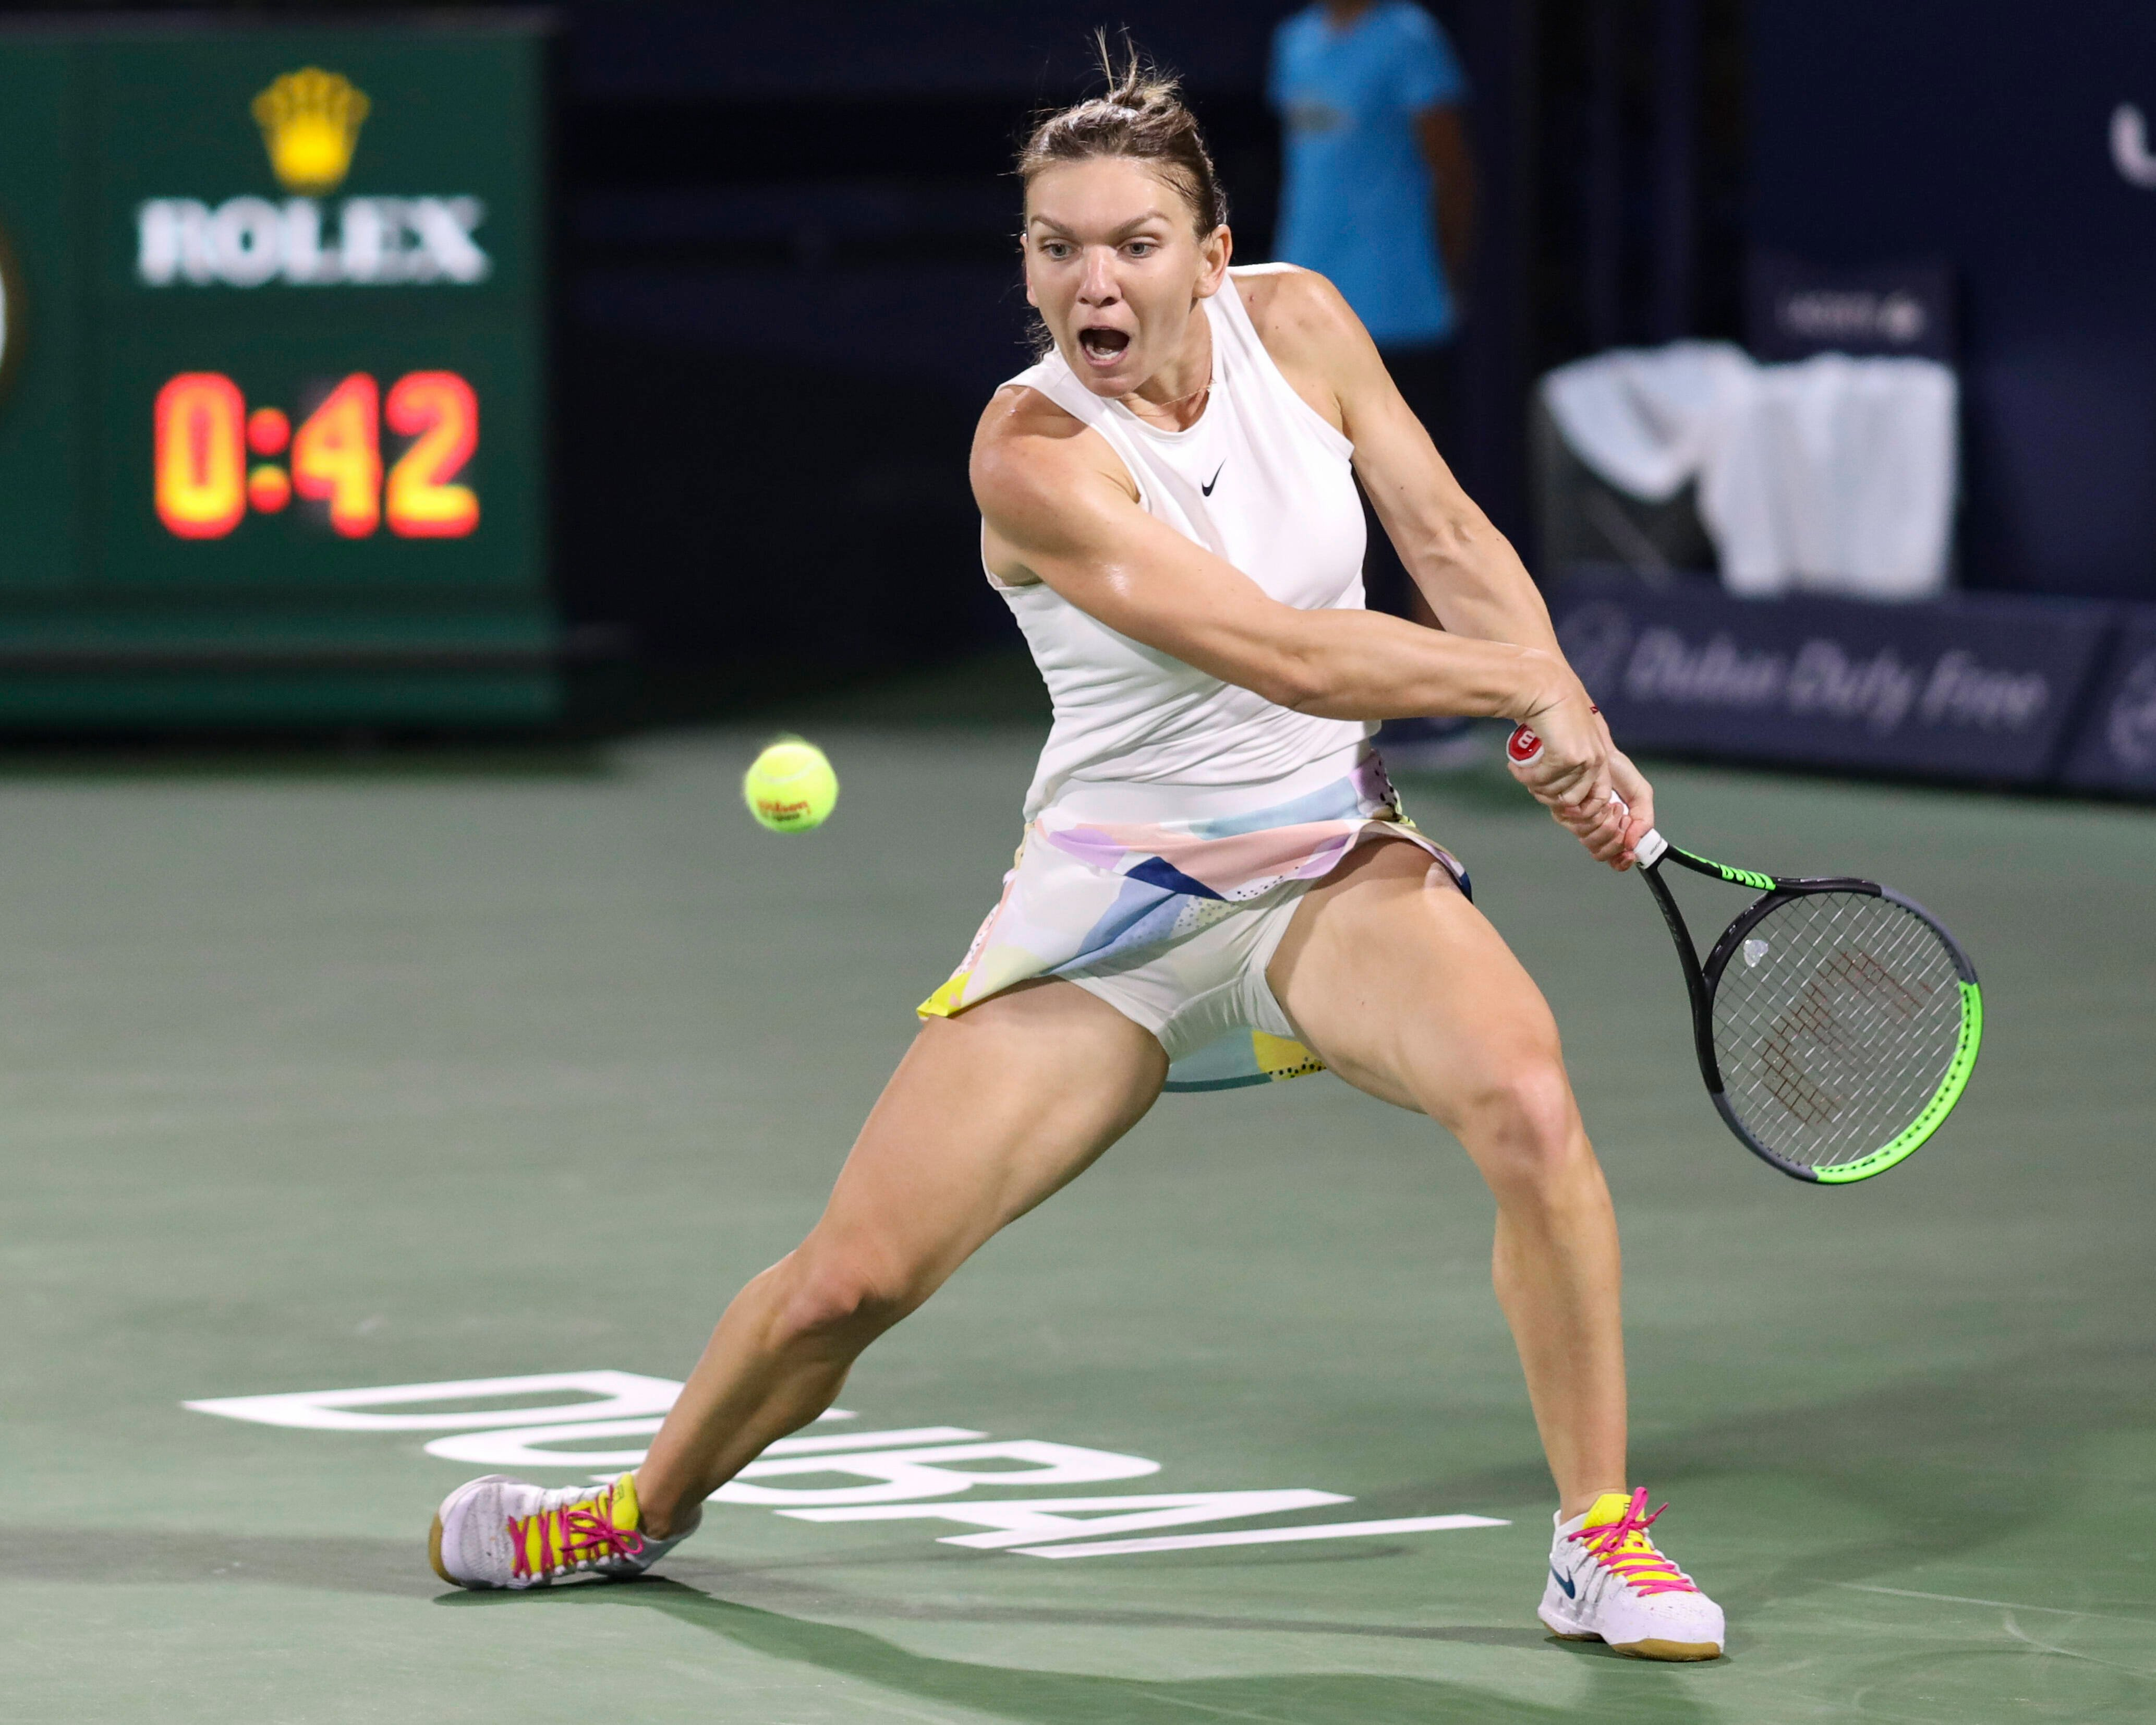 Simona Halep will be back on court next month